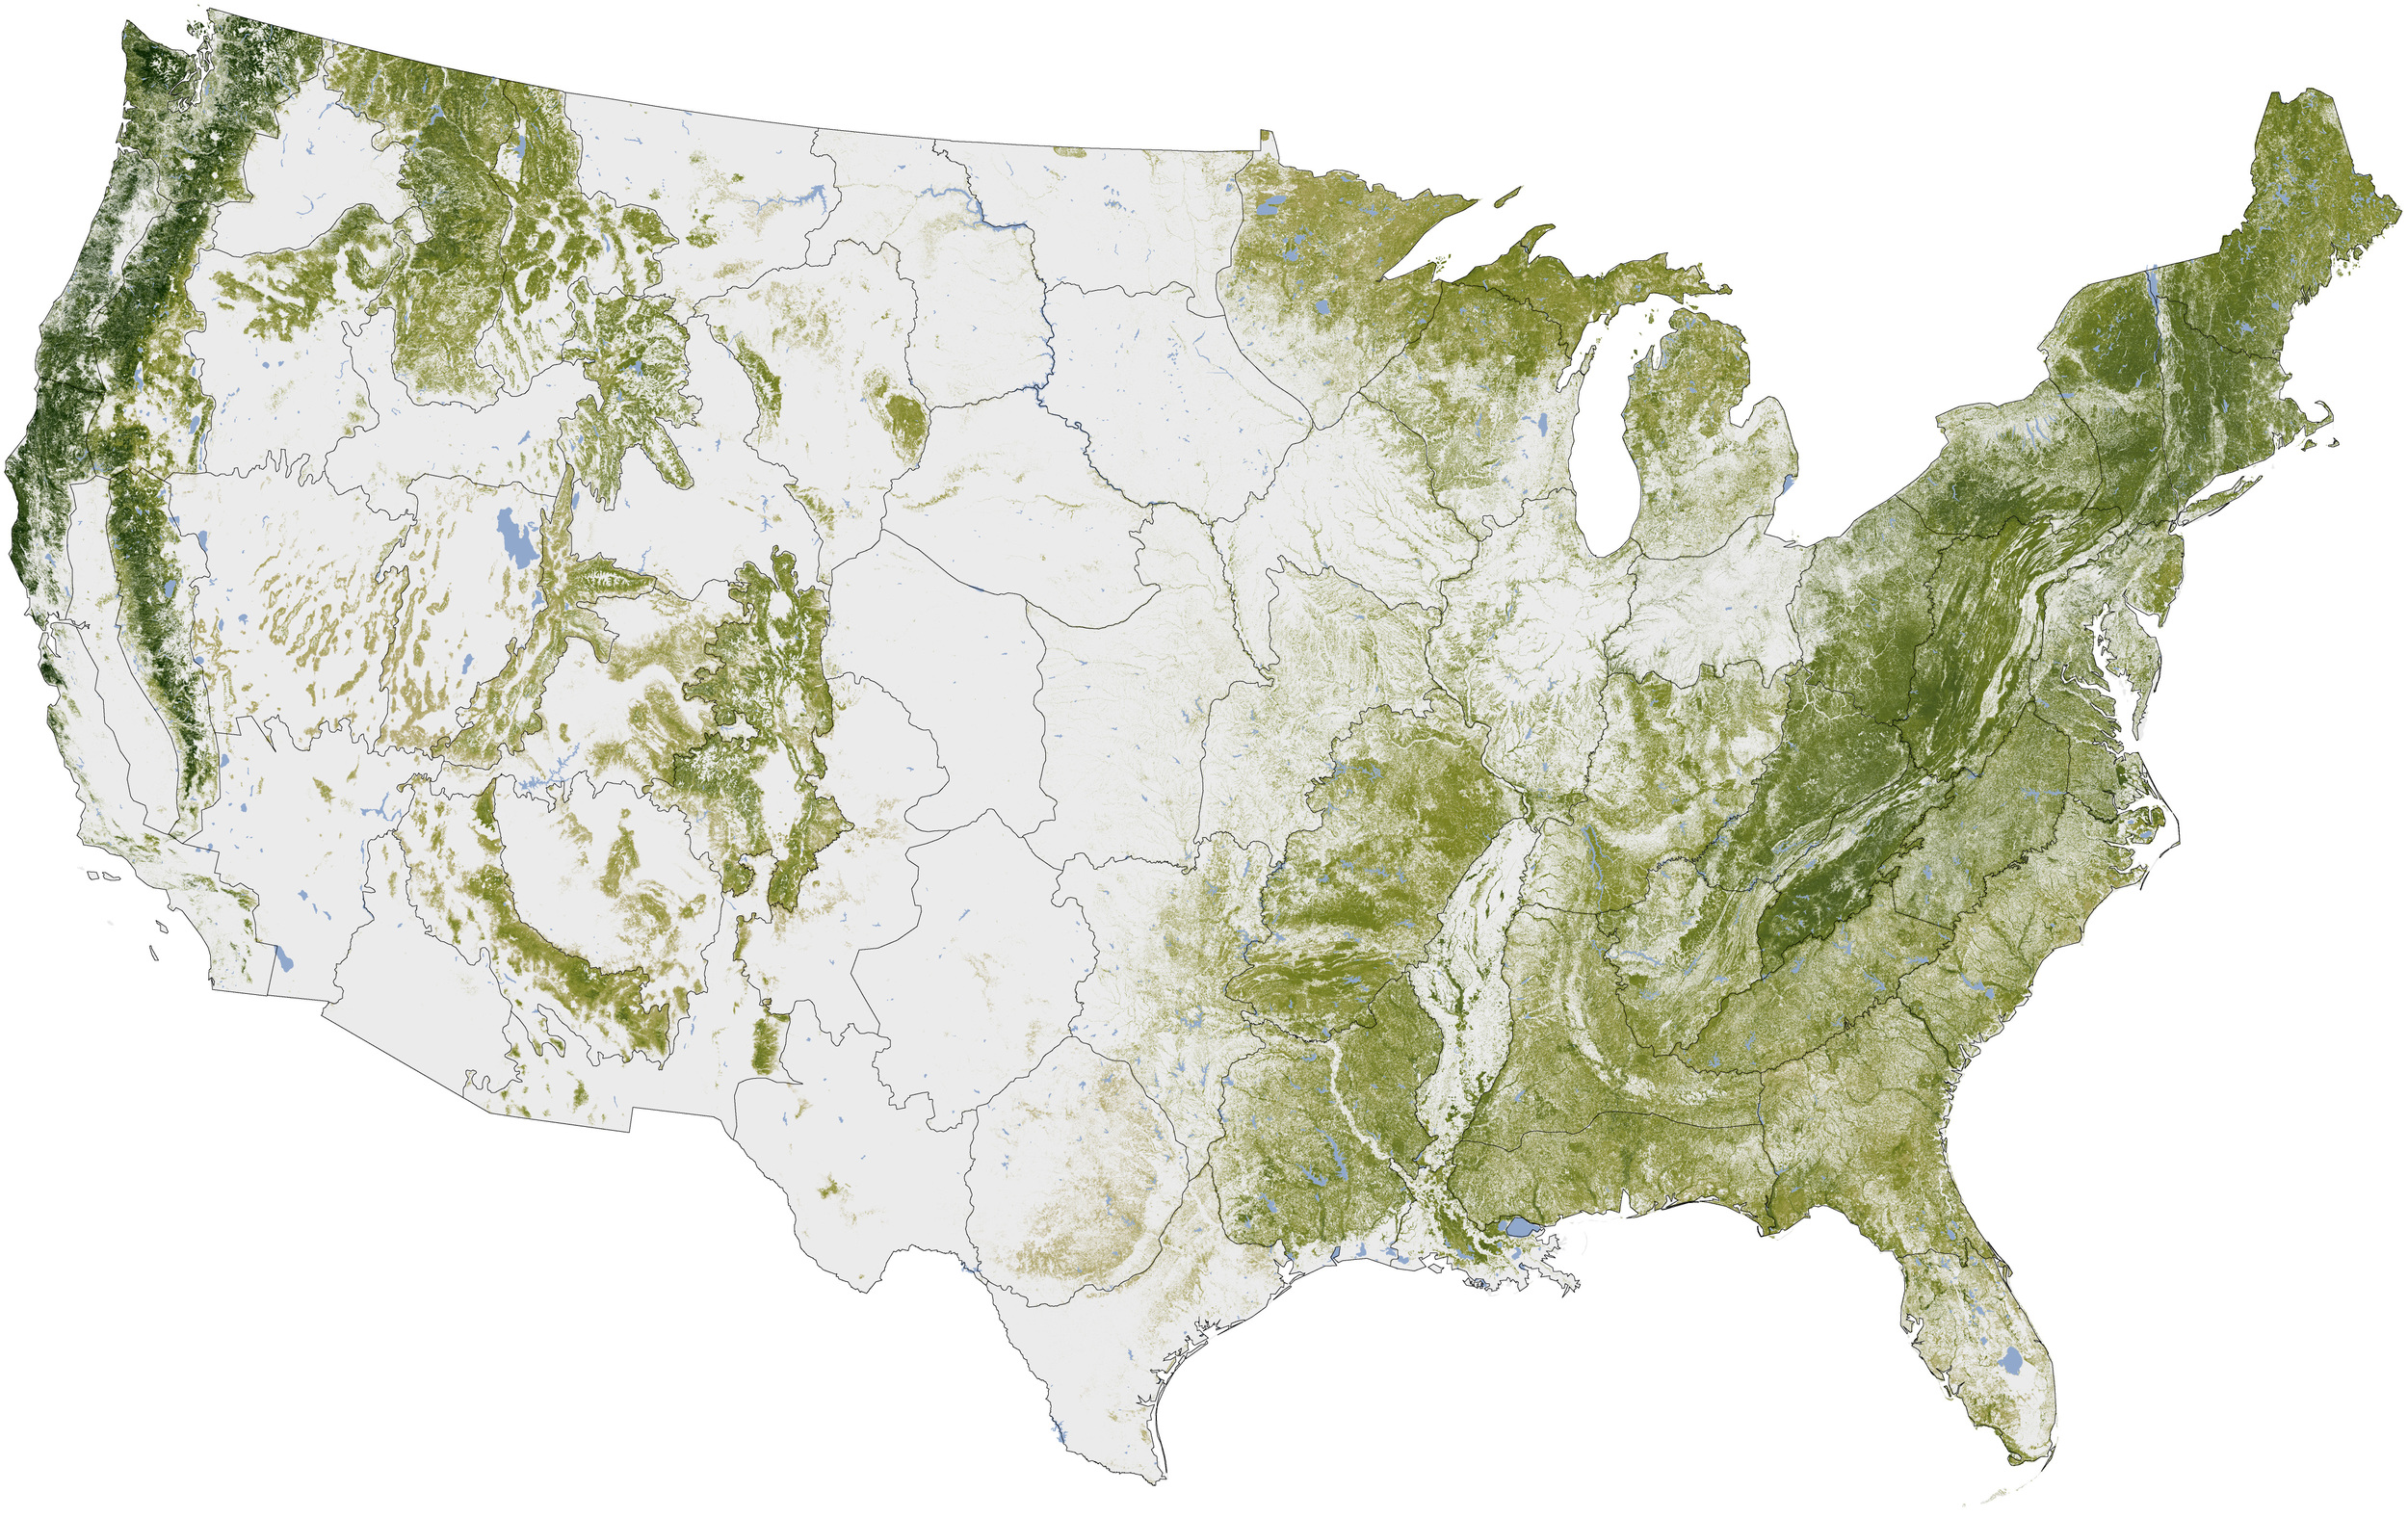 AMAZING MAP SHOWS EVERY TREE IN THE USA (map)